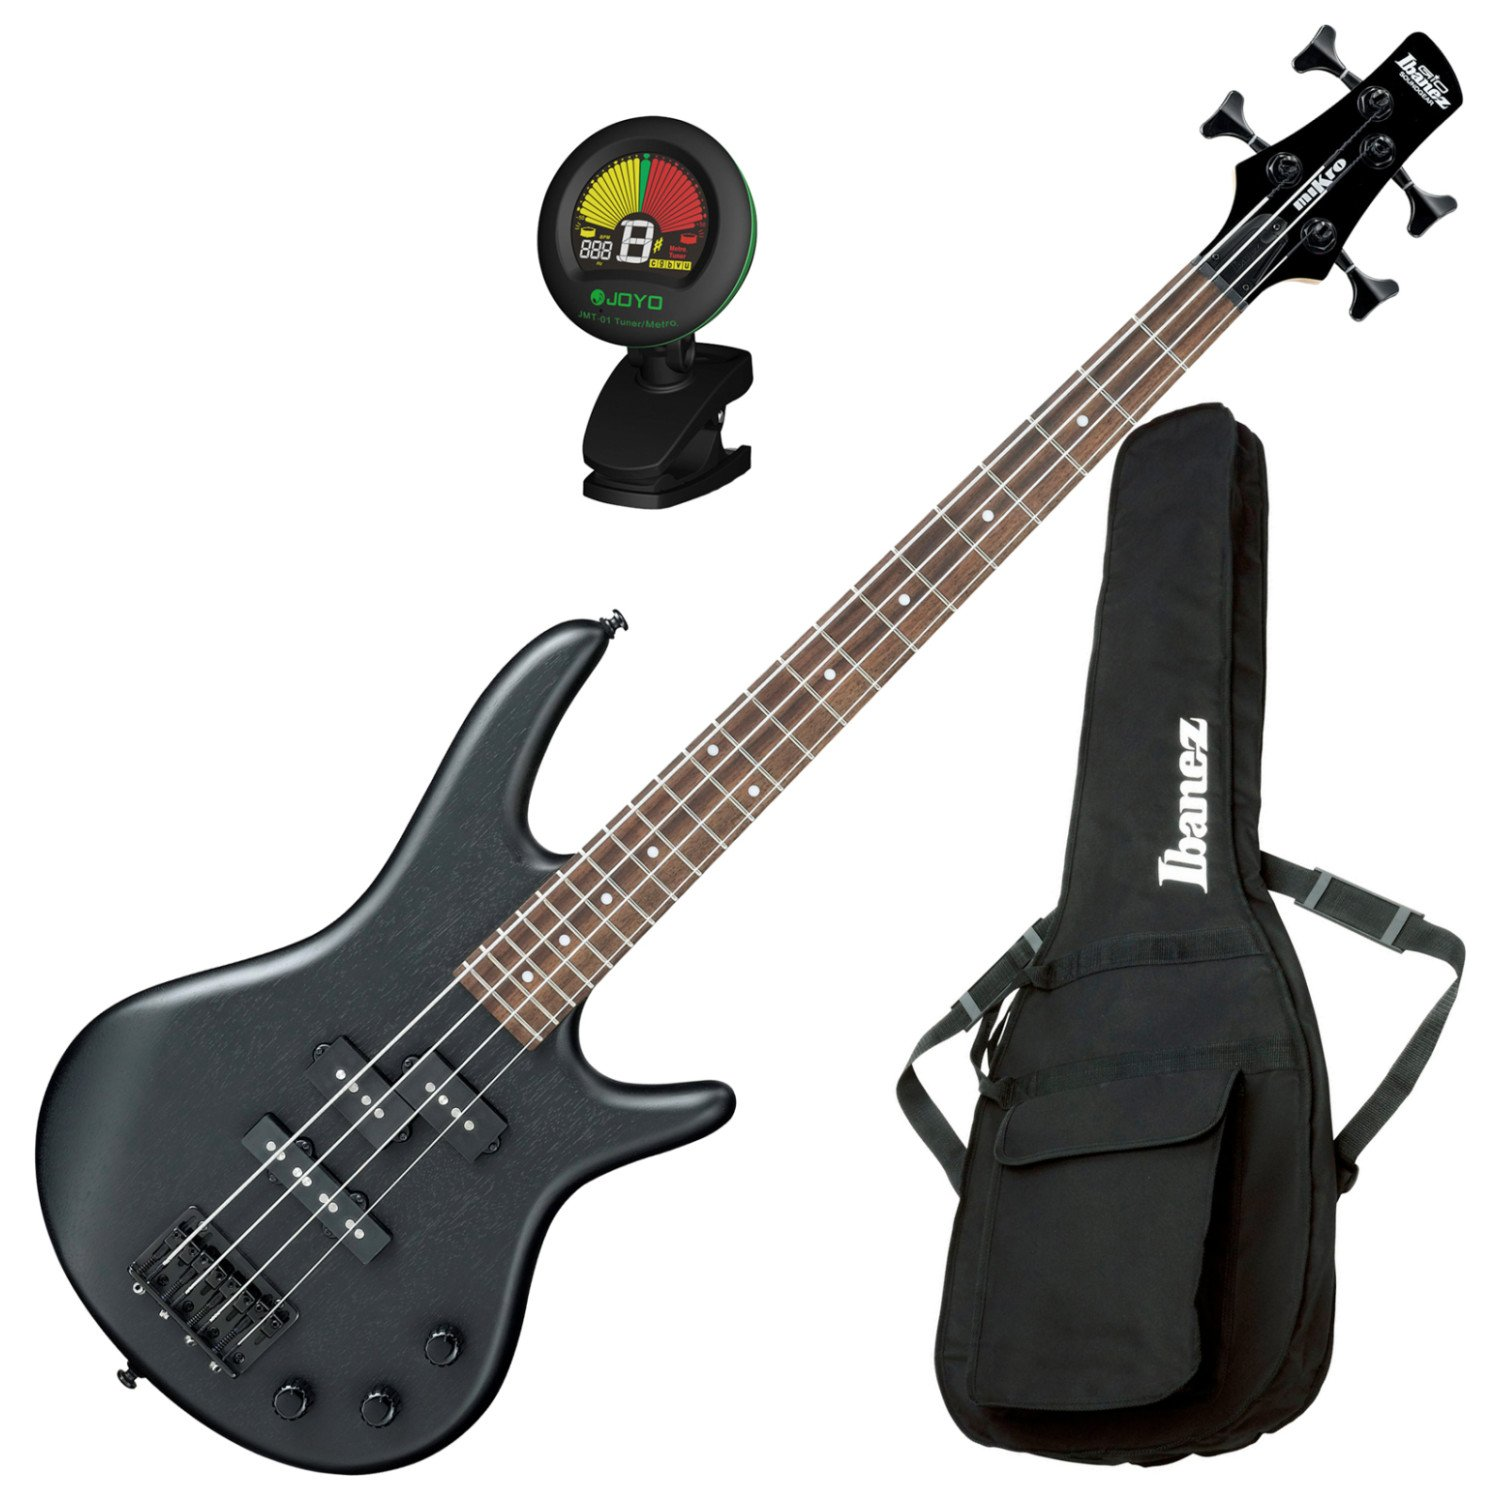 Ibanez GSRM20BWK GIO 4-String Mikro Electric Bass Weathered Black with Gig Bag and Tuner GSRM20BWK BUNDLE